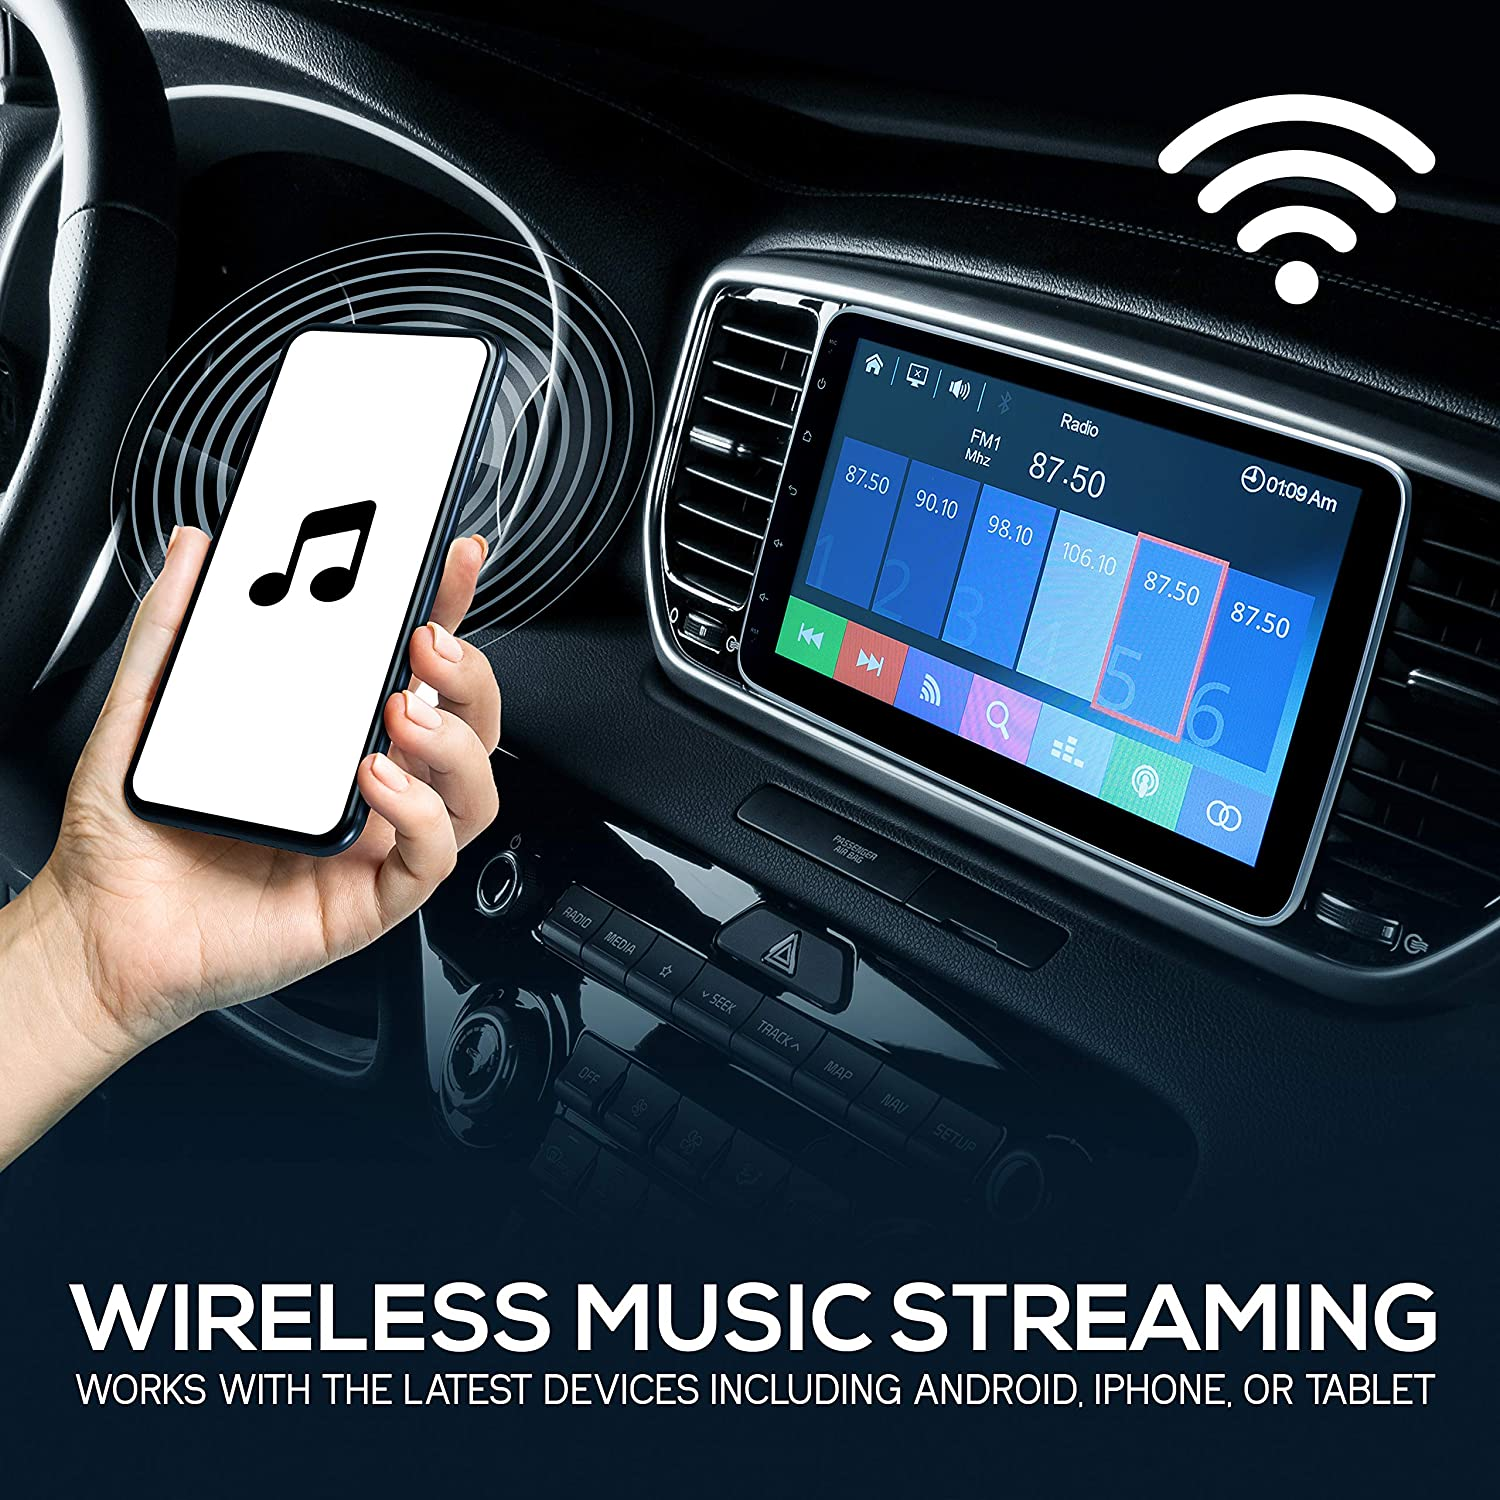 Bluetooth Indash Car Stereo Touch Screen Receiver Head Unit with Backup Camera Steering Wheel Control USB Phone Link 10.1-Inch Single DIN Car Stereo Hands-Free Call Pyle PL1SN104 AM FM Radio